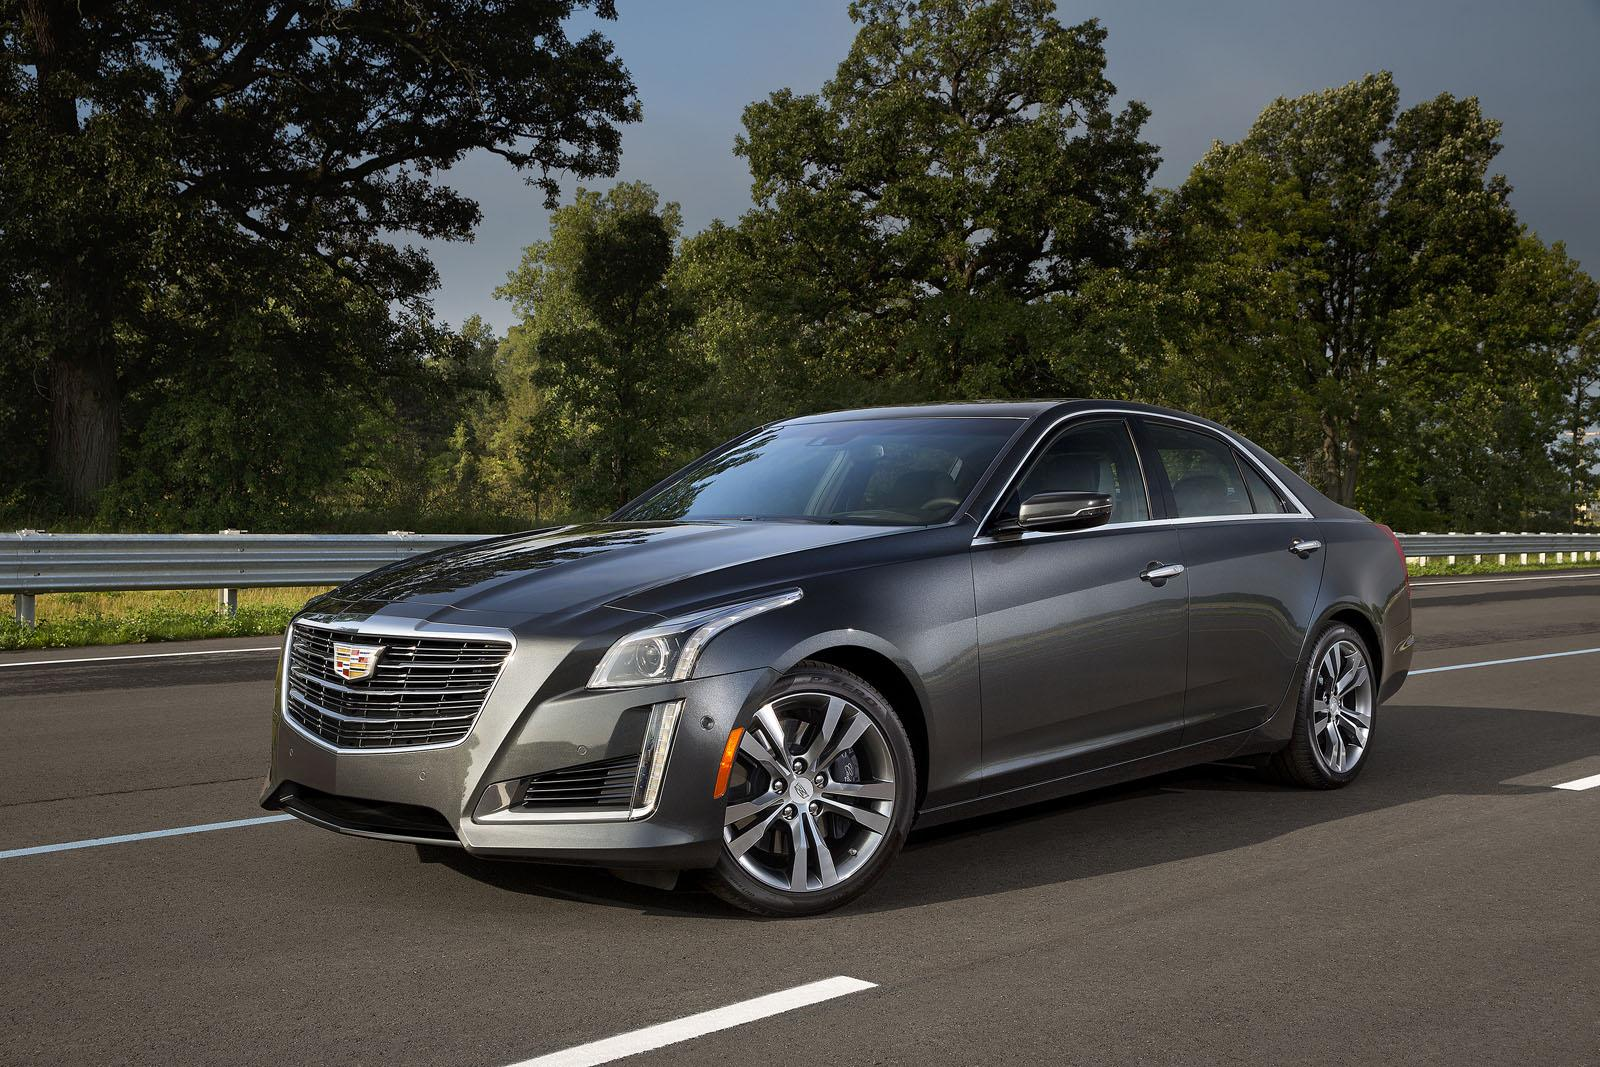 2016 cadillac ats and cts get new 3 6 liter v6 from ct6 autoevolution. Black Bedroom Furniture Sets. Home Design Ideas